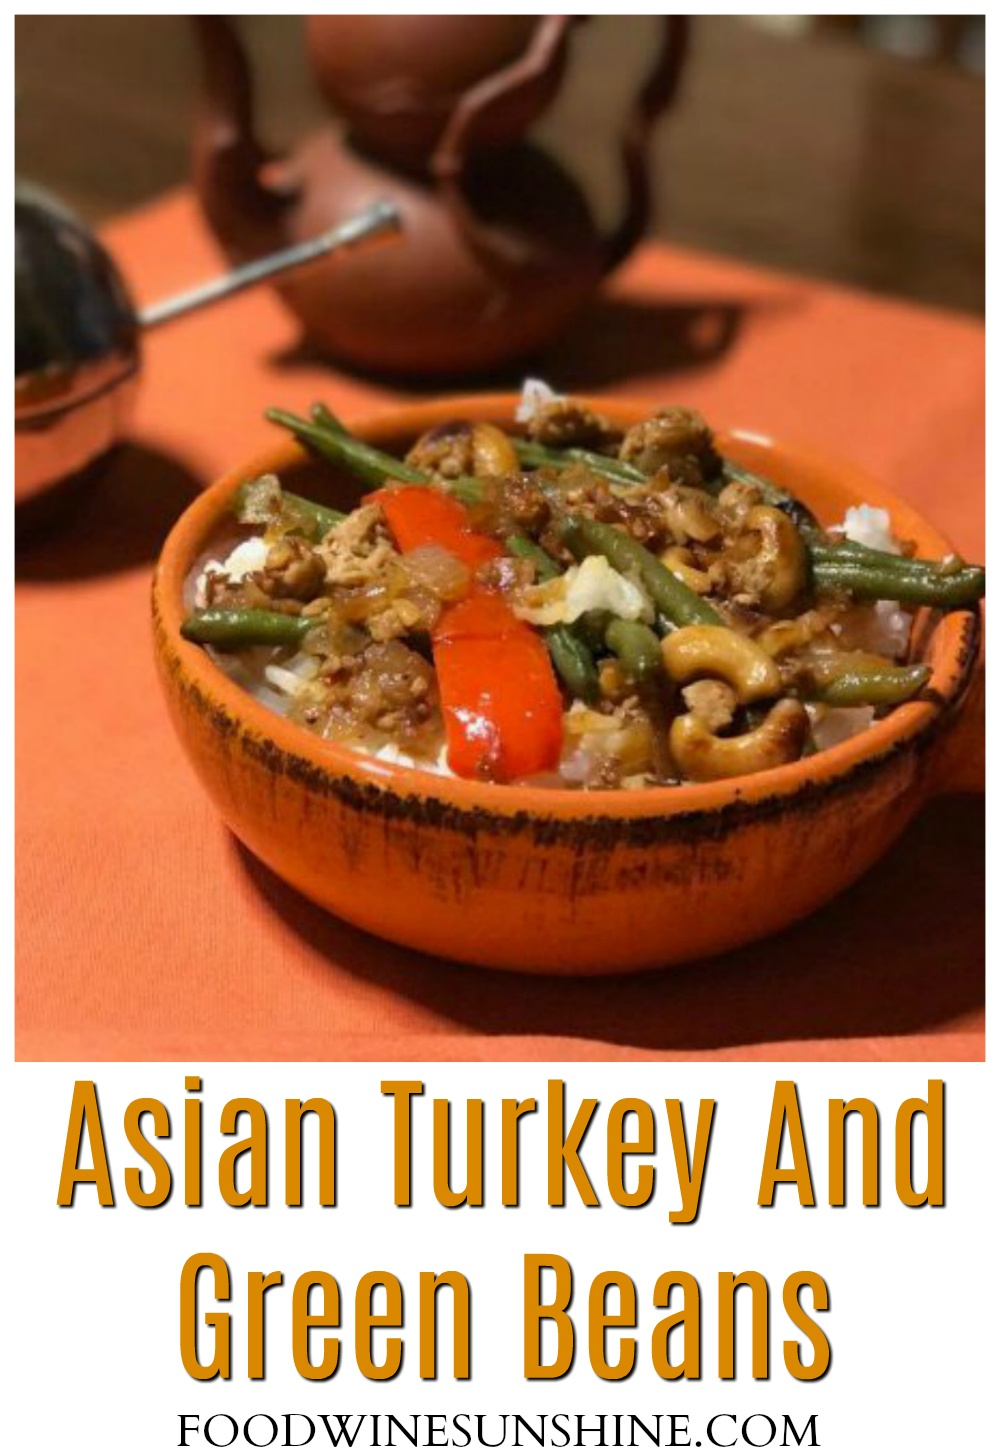 Asian Turkey And Green Beans